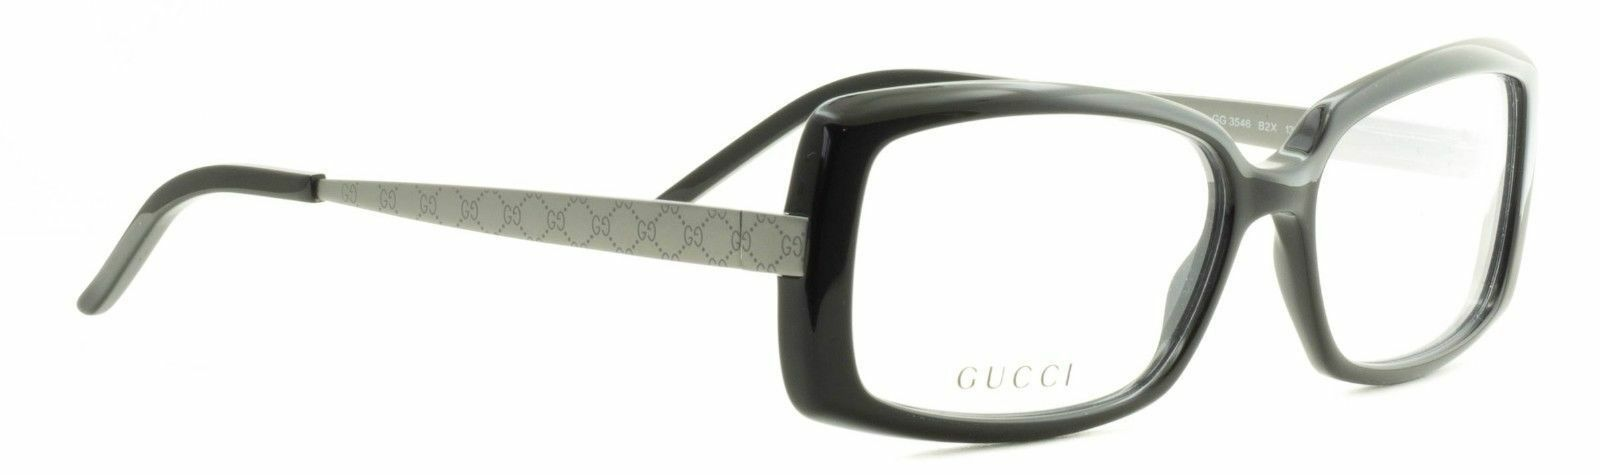 dea6b36c06f New Authentic Gucci Gg 3546 B2X Black and 50 similar items